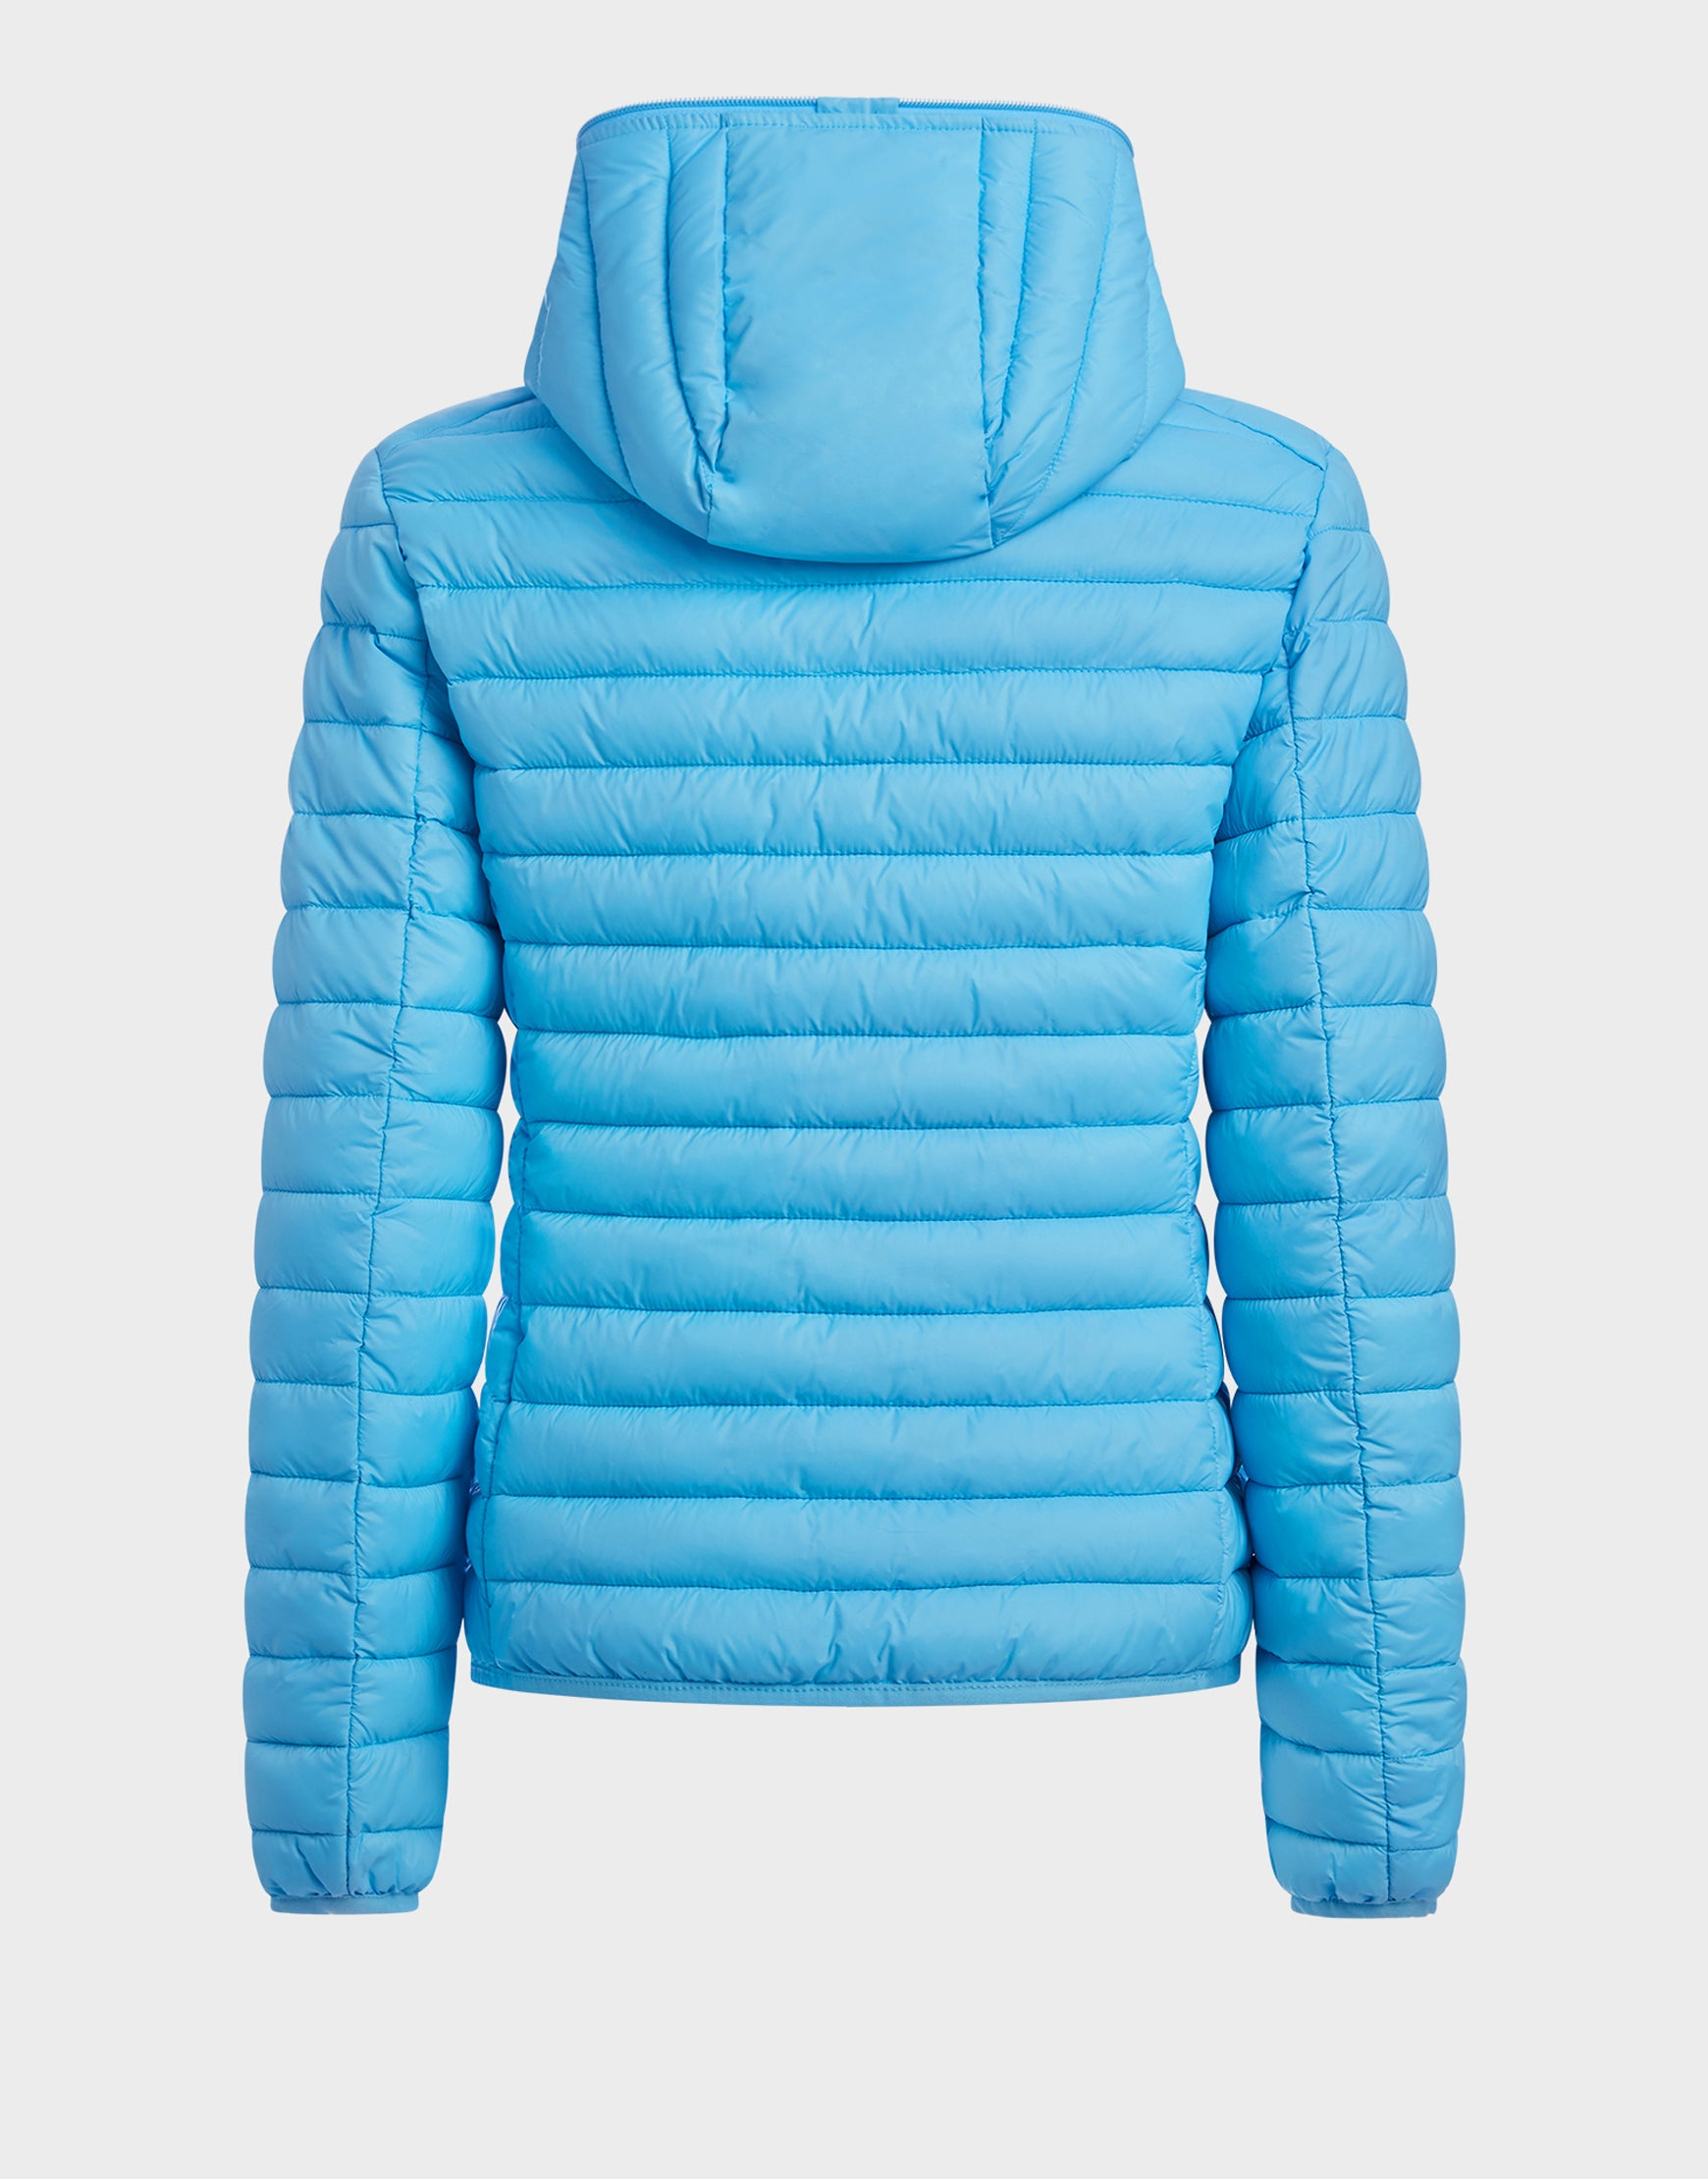 Womens IRIS Hooded Jacket in Ethereal Blue